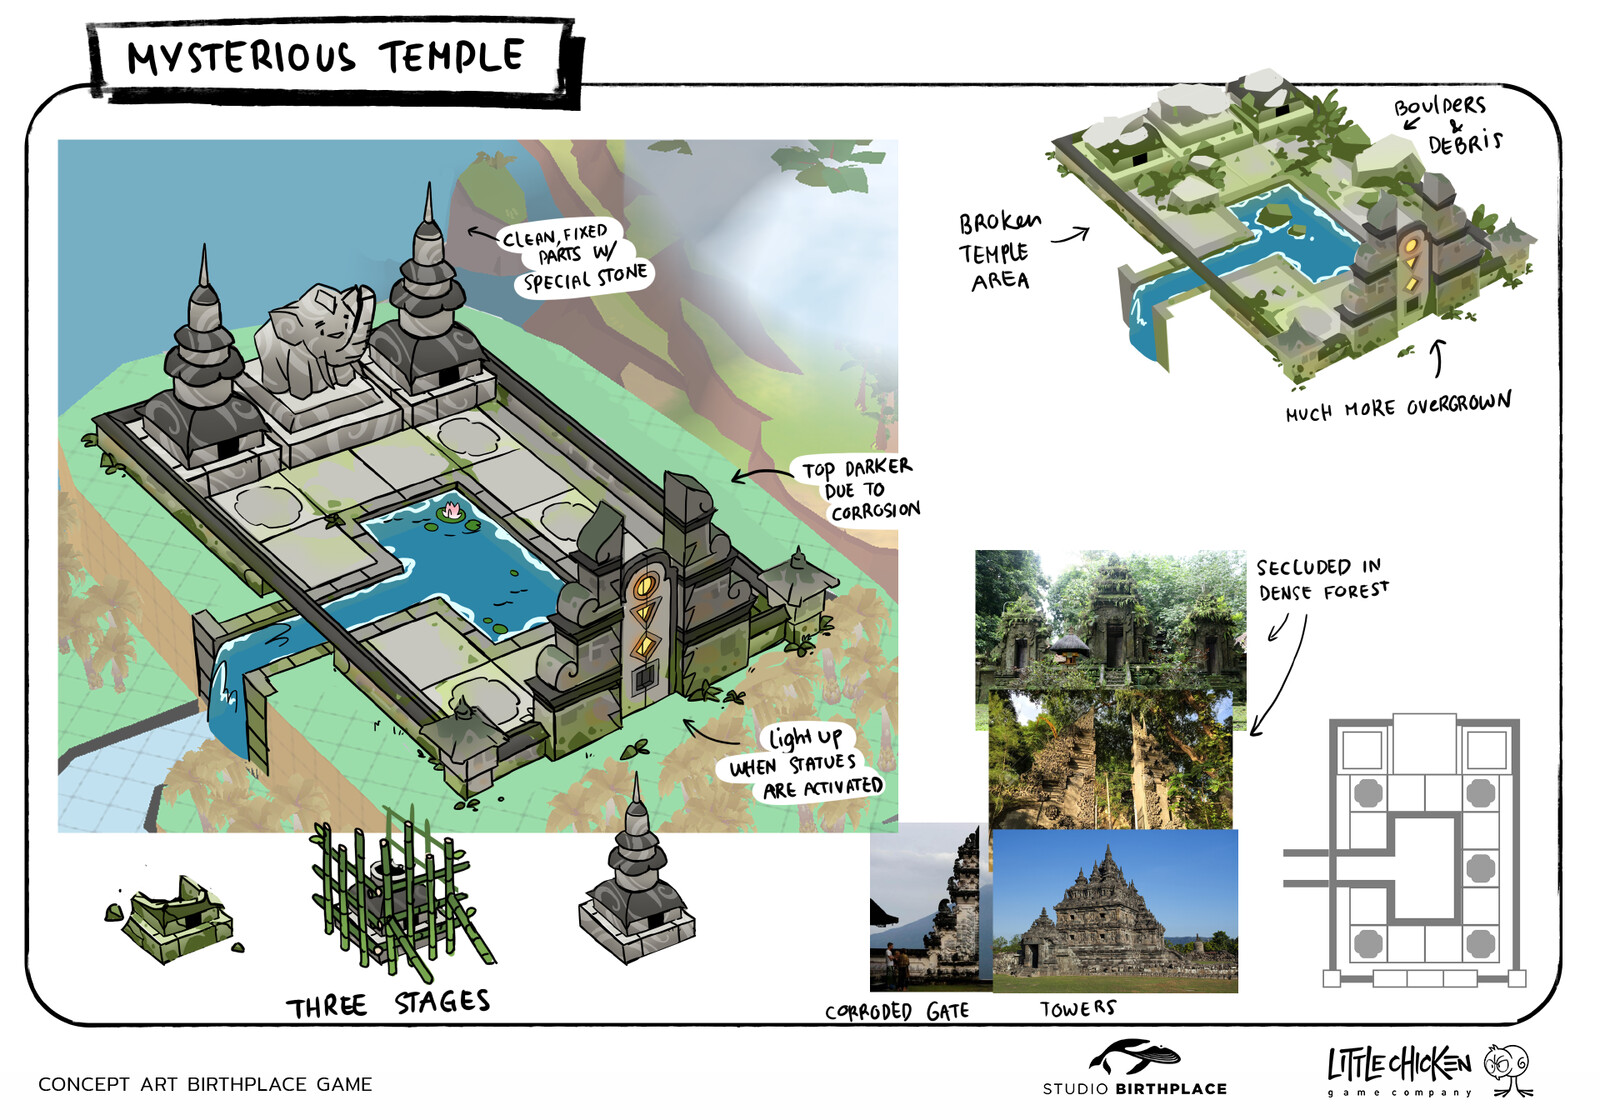 Mysterious temple concept sheet